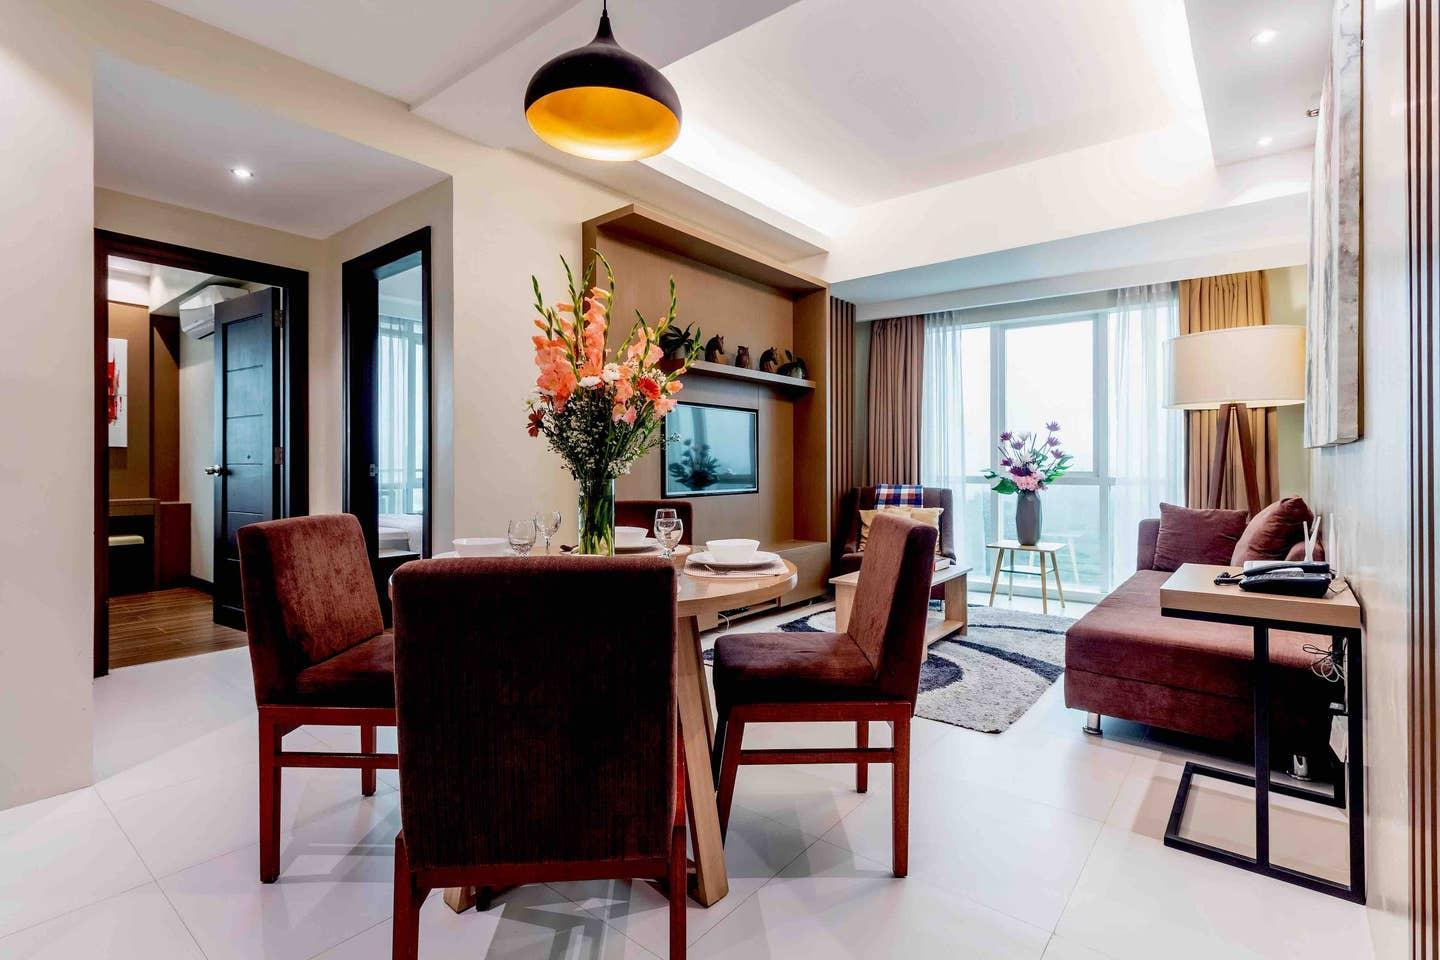 LUXURY UNIT In CENTRAL CEBU w/ CITY VIEW FOR 8 pax